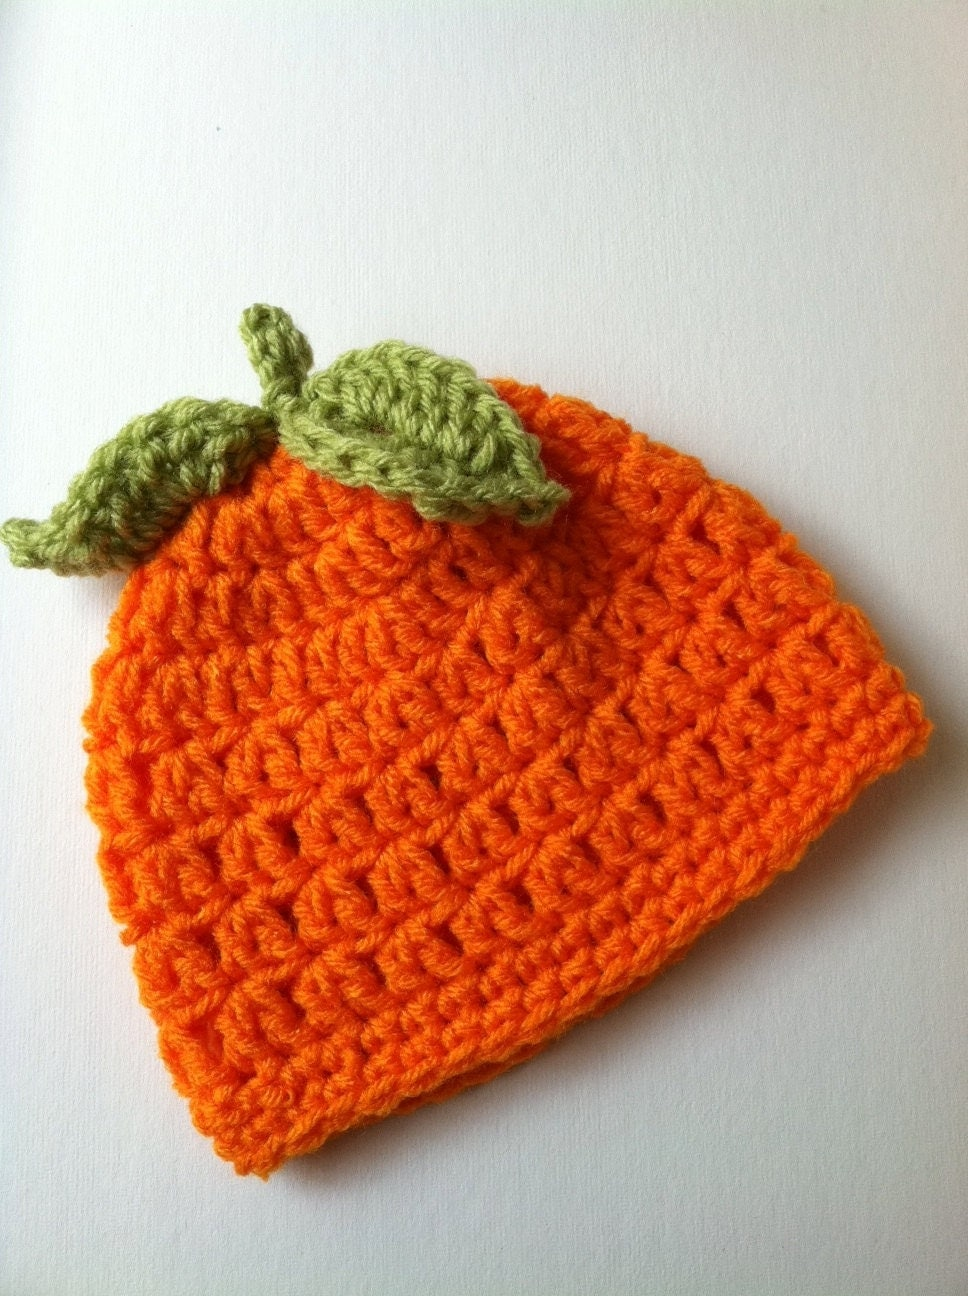 Free Crochet Hat Patterns For Halloween : Halloween Crochet Baby Hat Orange Pumpkin by ...